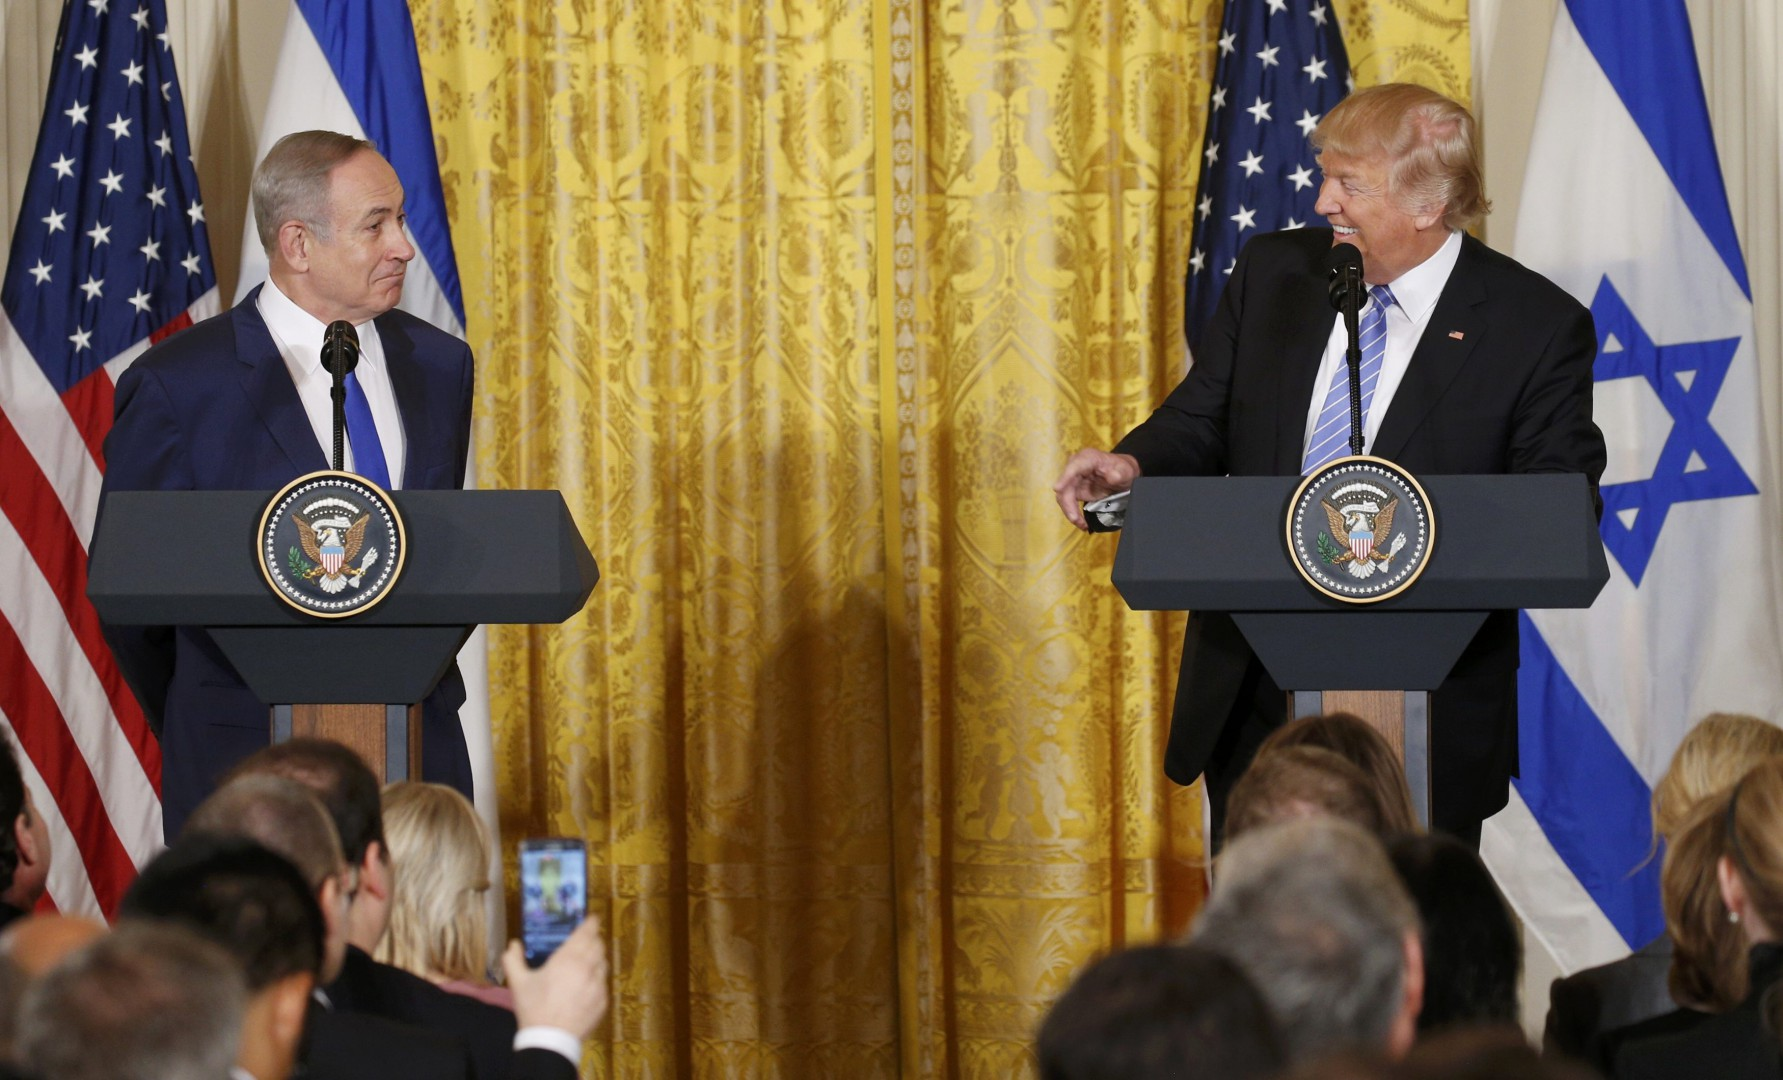 U.S. President Donald Trump (R) looks to Israeli Prime Minister Benjamin Netanyahu hold a joint news conference at the White House in Washington, U.S., February 15, 2017.   REUTERS/Kevin Lamarque